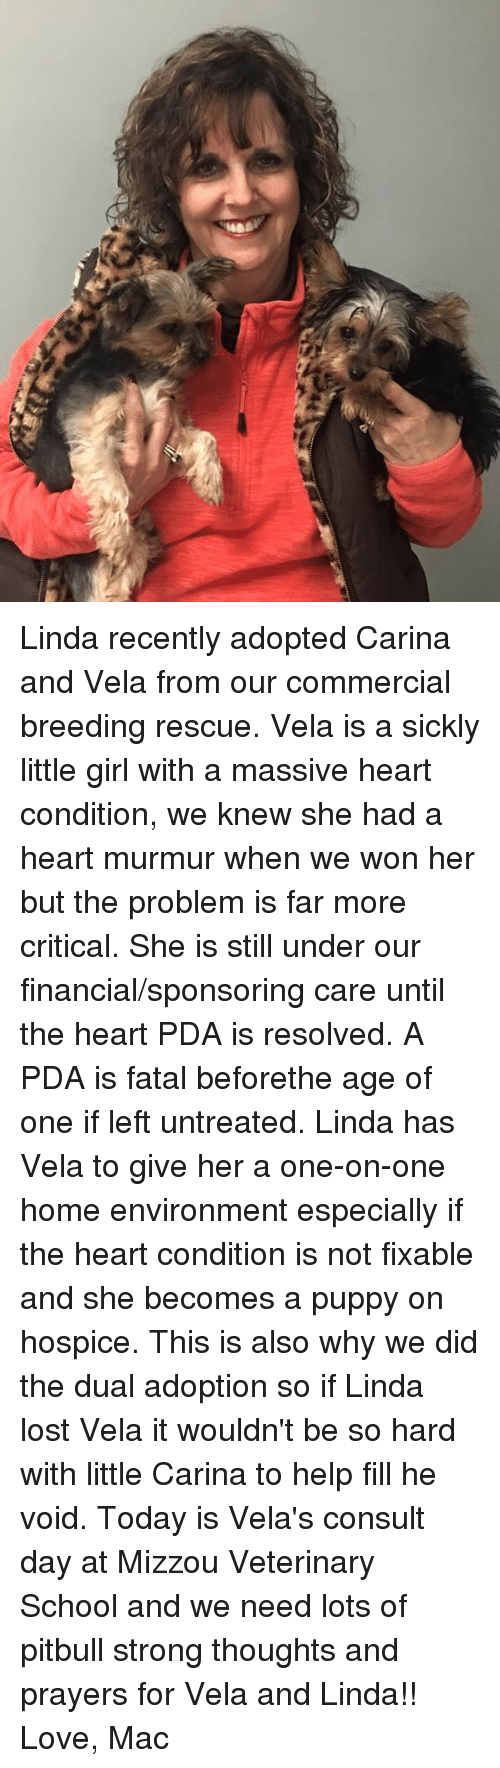 Love, Memes, and School: Linda recently adopted Carina and Vela from our commercial breeding rescue. Vela is a sickly little girl with a massive heart condition, we knew she had a heart murmur when we won her but the problem is far more critical. She is still under our financial/sponsoring care until the heart PDA is resolved. A PDA is fatal beforethe age of one if left untreated. Linda has Vela to give her a one-on-one home environment especially if the heart condition is not fixable and she becomes a puppy on hospice. This is also why we did the dual adoption so if Linda lost Vela it wouldn't be so hard with little Carina to help fill he void. Today is Vela's consult day at Mizzou Veterinary School and we need lots of pitbull strong thoughts and prayers for Vela and Linda!!   Love, Mac